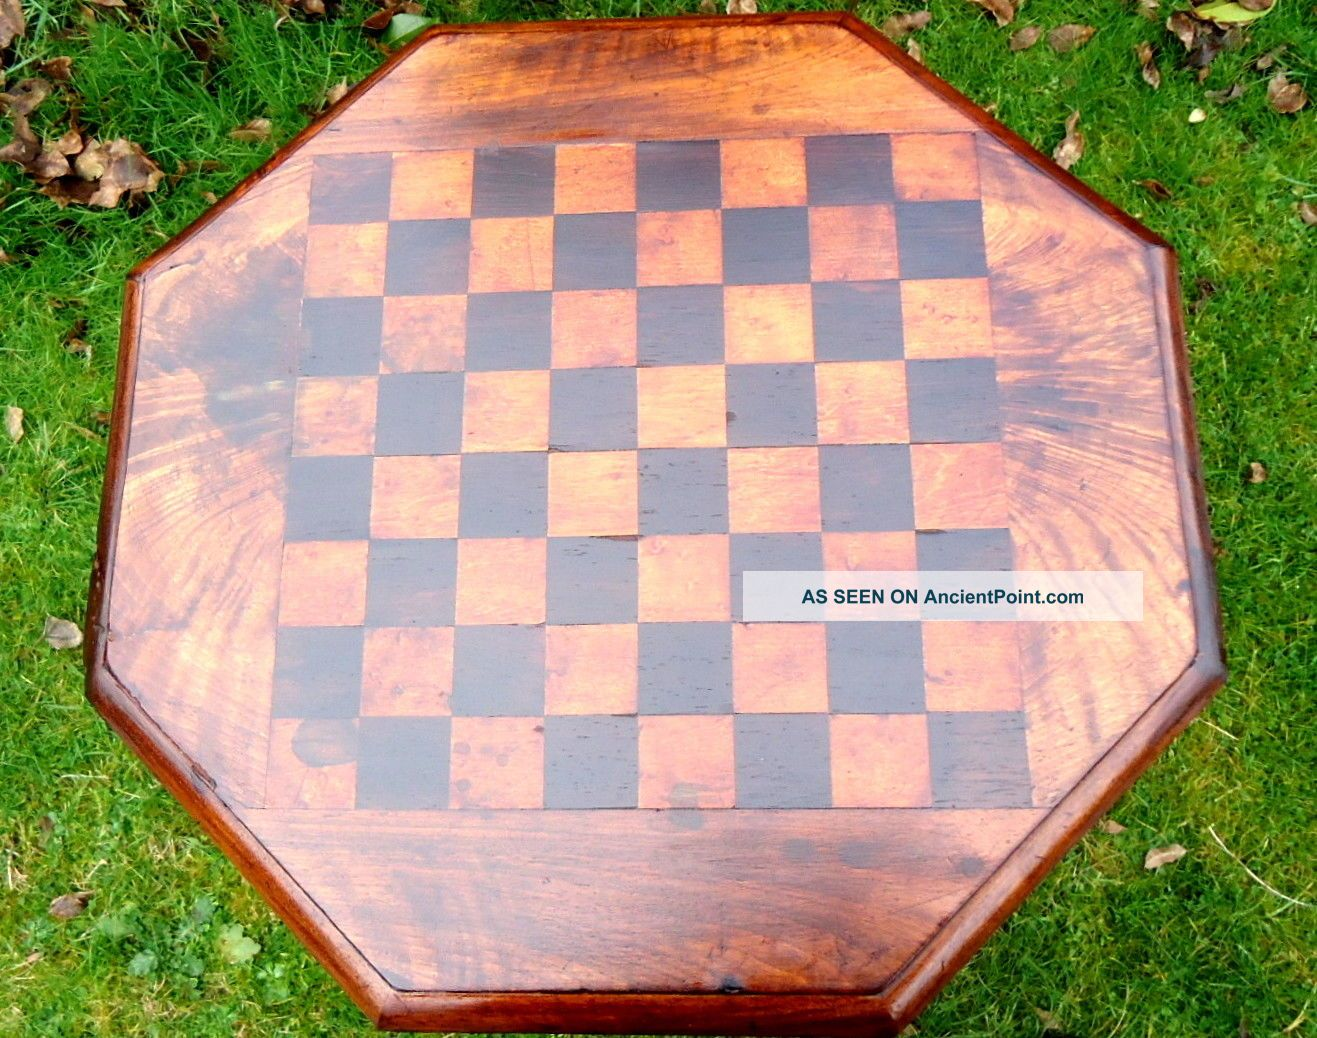 Regency.  Games Table With Octagonal Top.  Chess Or Draughts.  C1790 - 1830. Pre-1800 photo